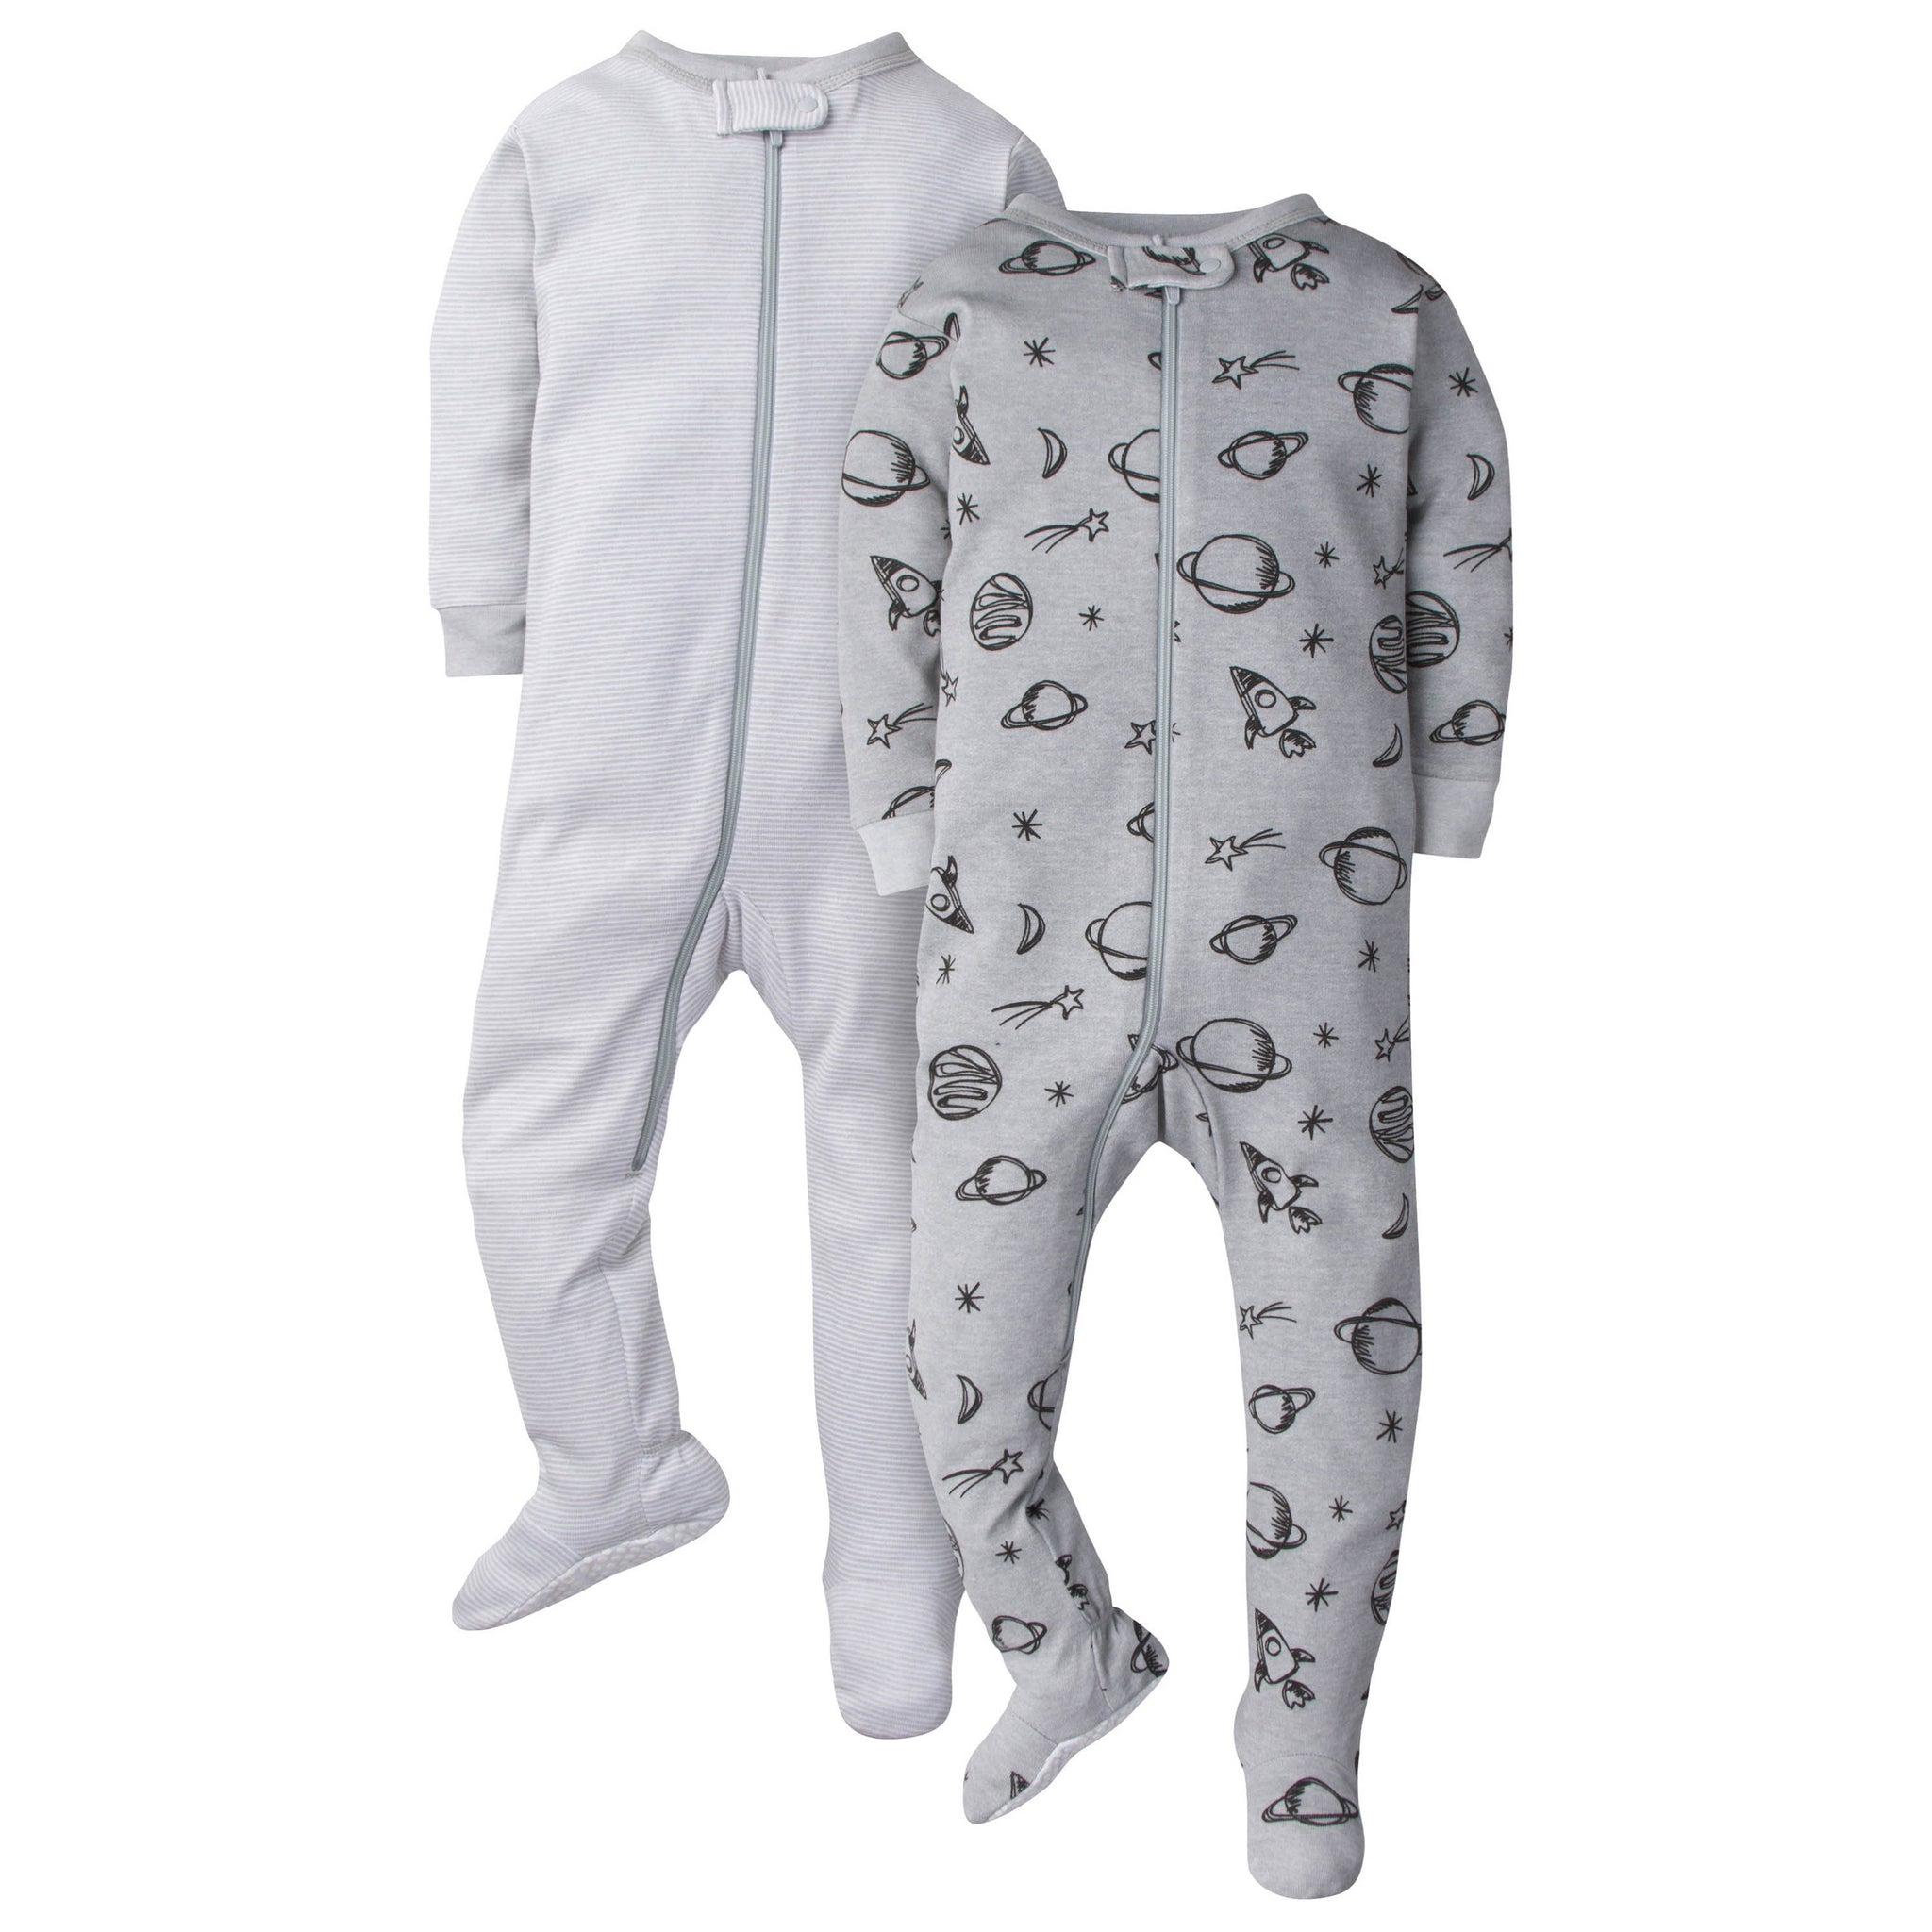 2-Pack Baby Boys Footed Union Suits - Universe-Gerber Childrenswear